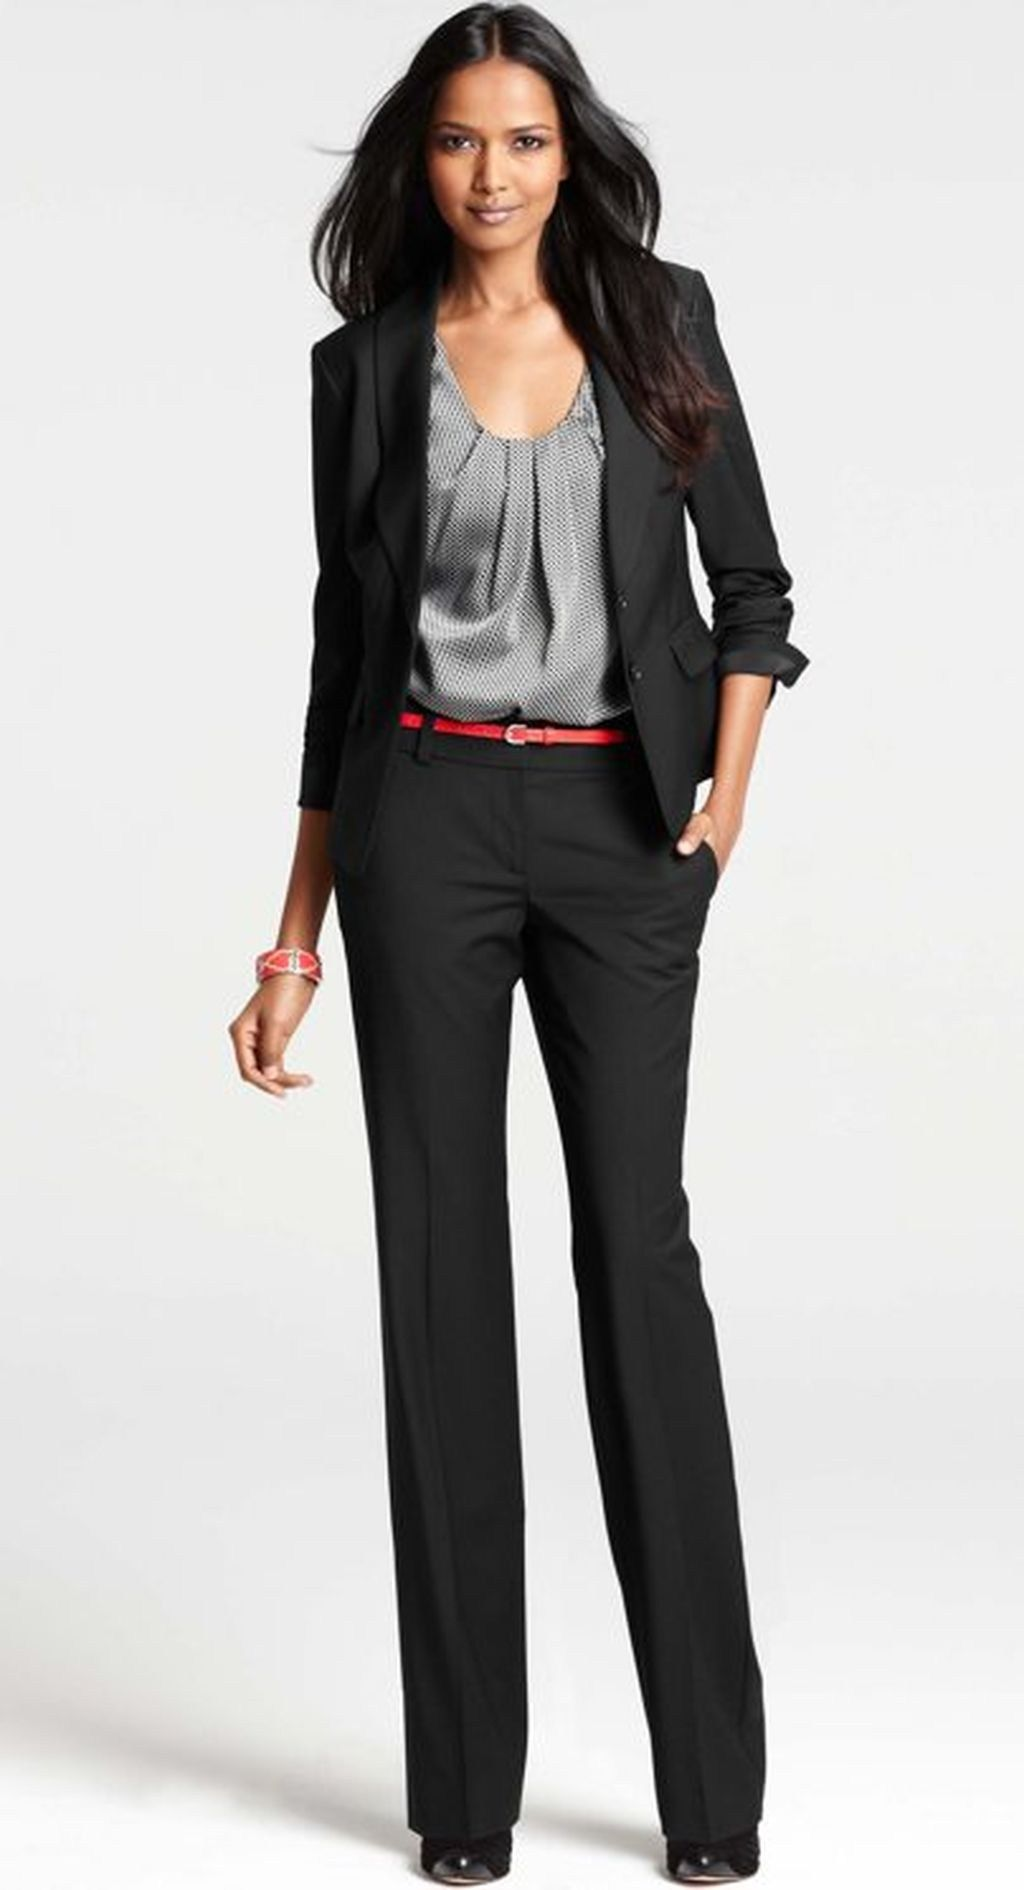 Casual outfits ideas for professional women 34 | Pinterest ...